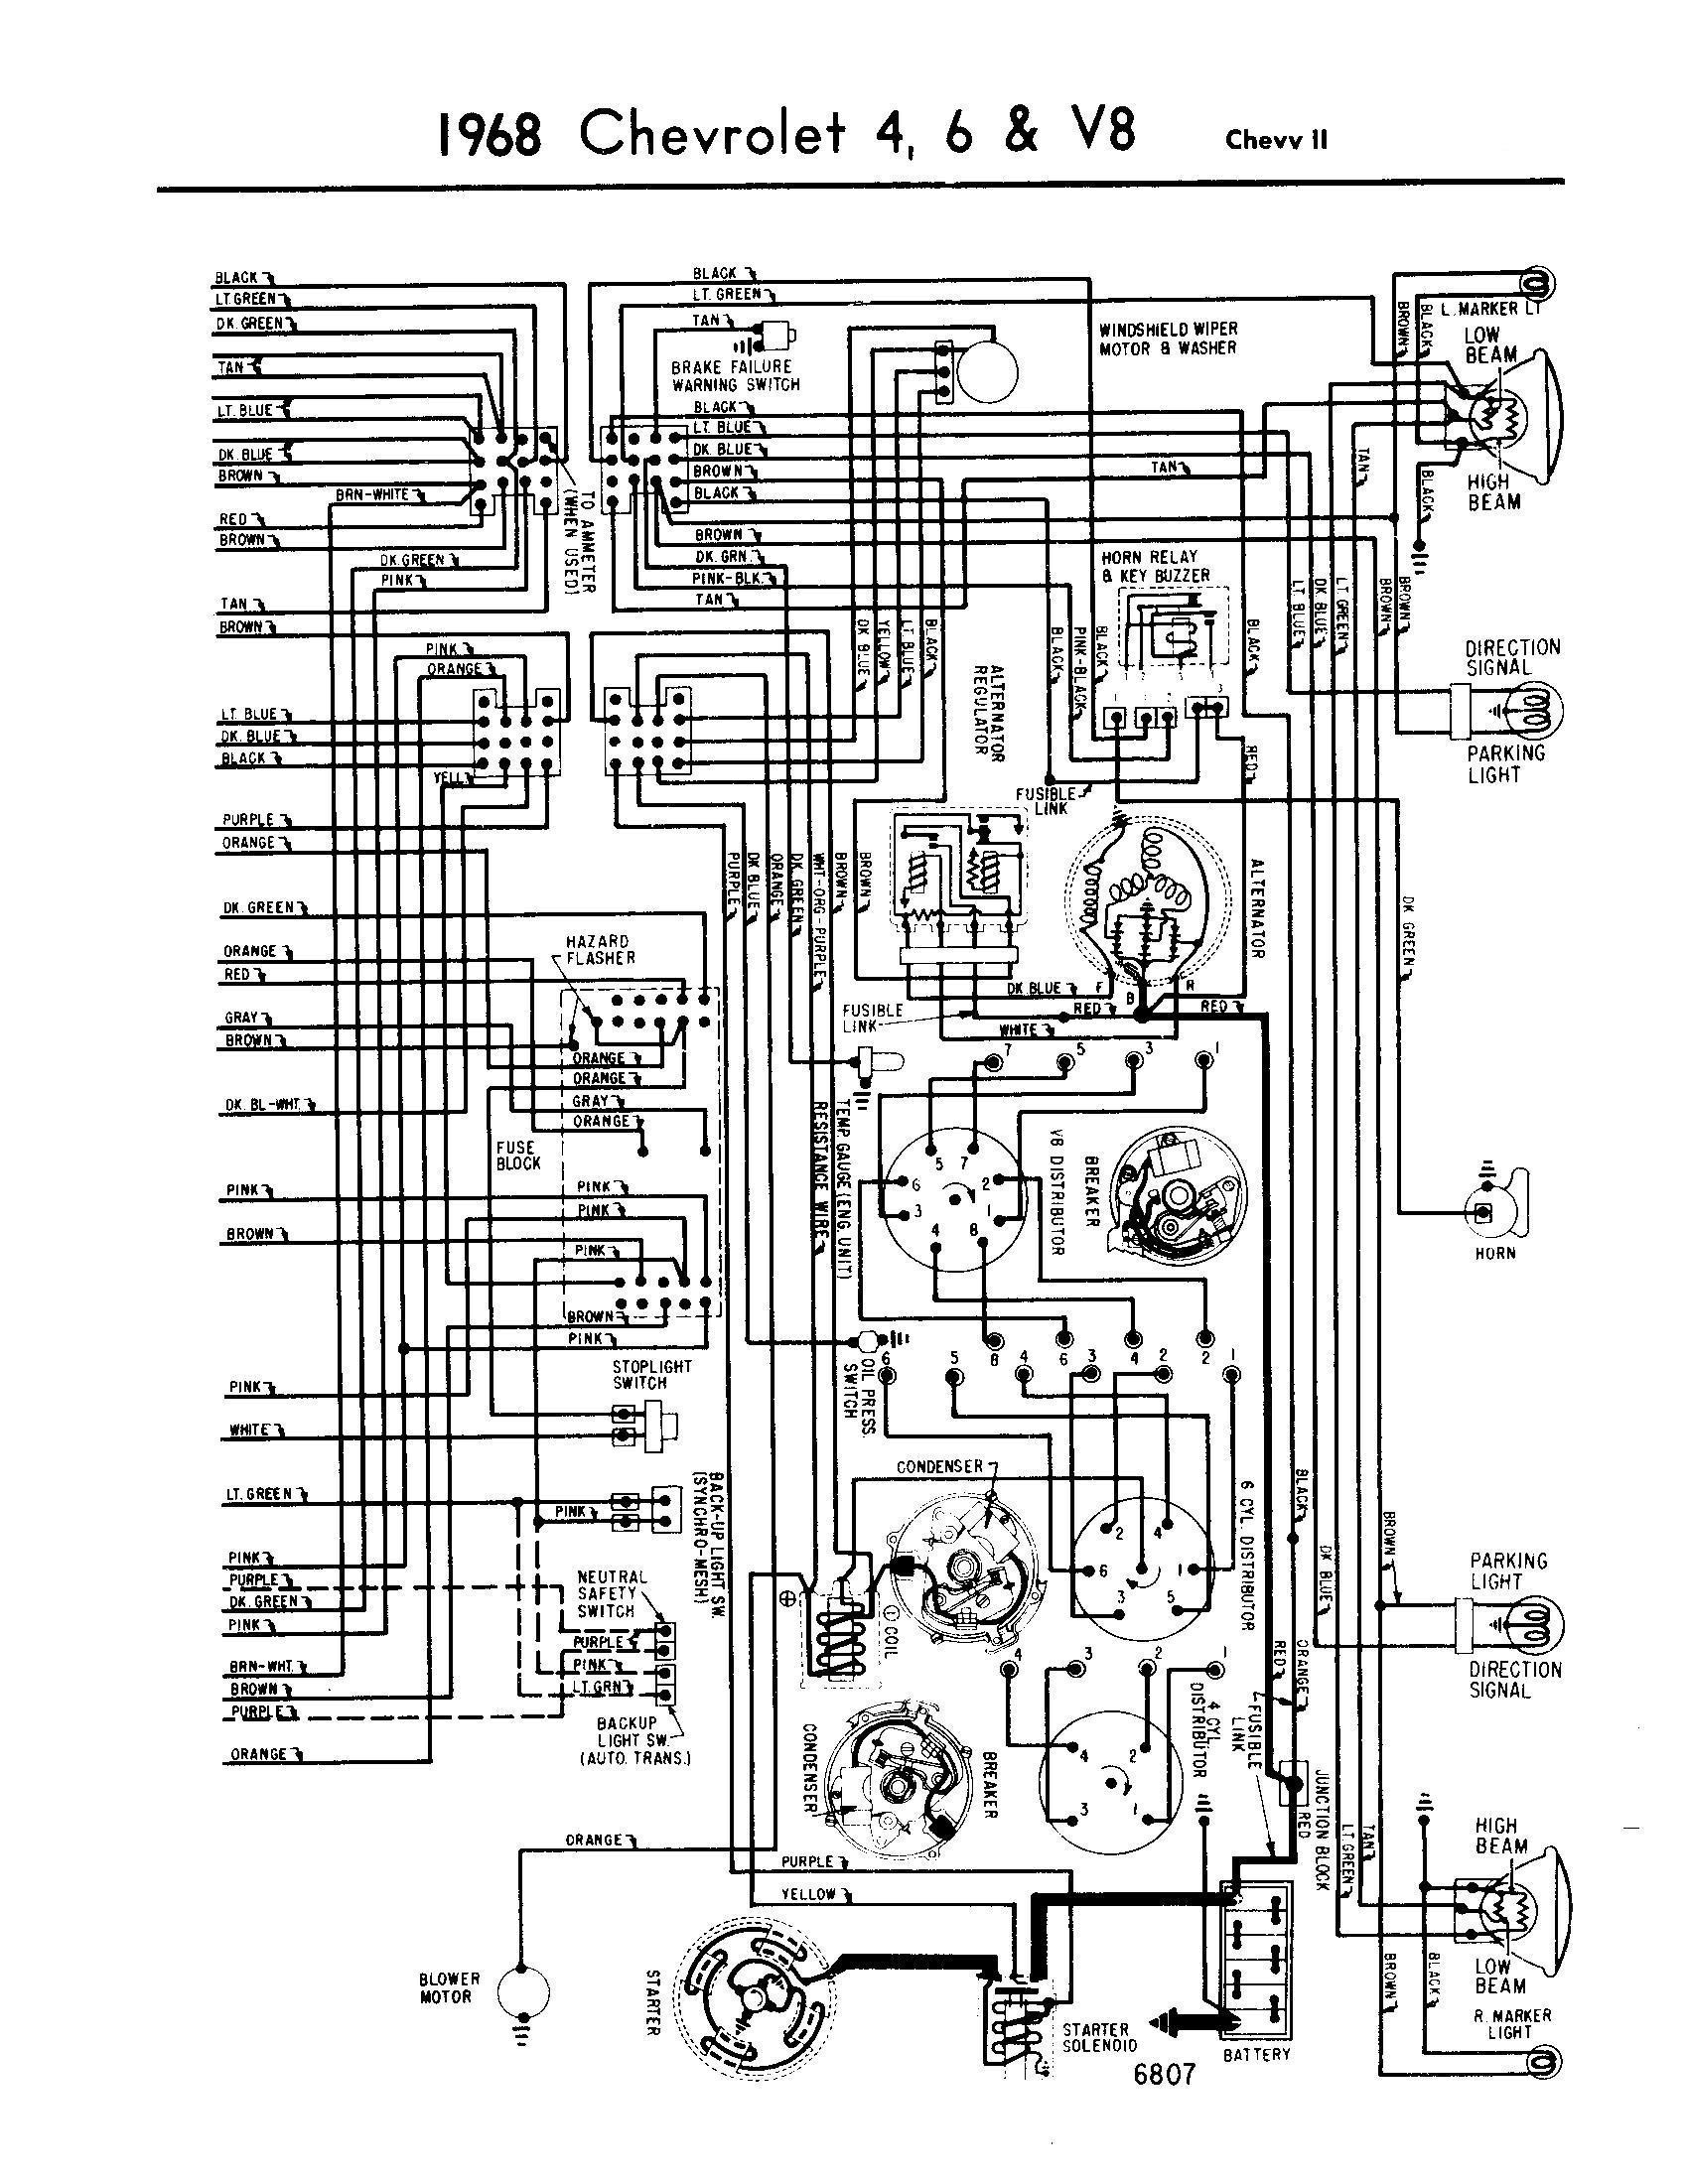 1970 Camaro Headlight Switch Wiring Diagram Worksheet And 57 Chevy Light 68 Horn Relay Harness Bgmt Data U2022 Rh App Carrot Ie Ford